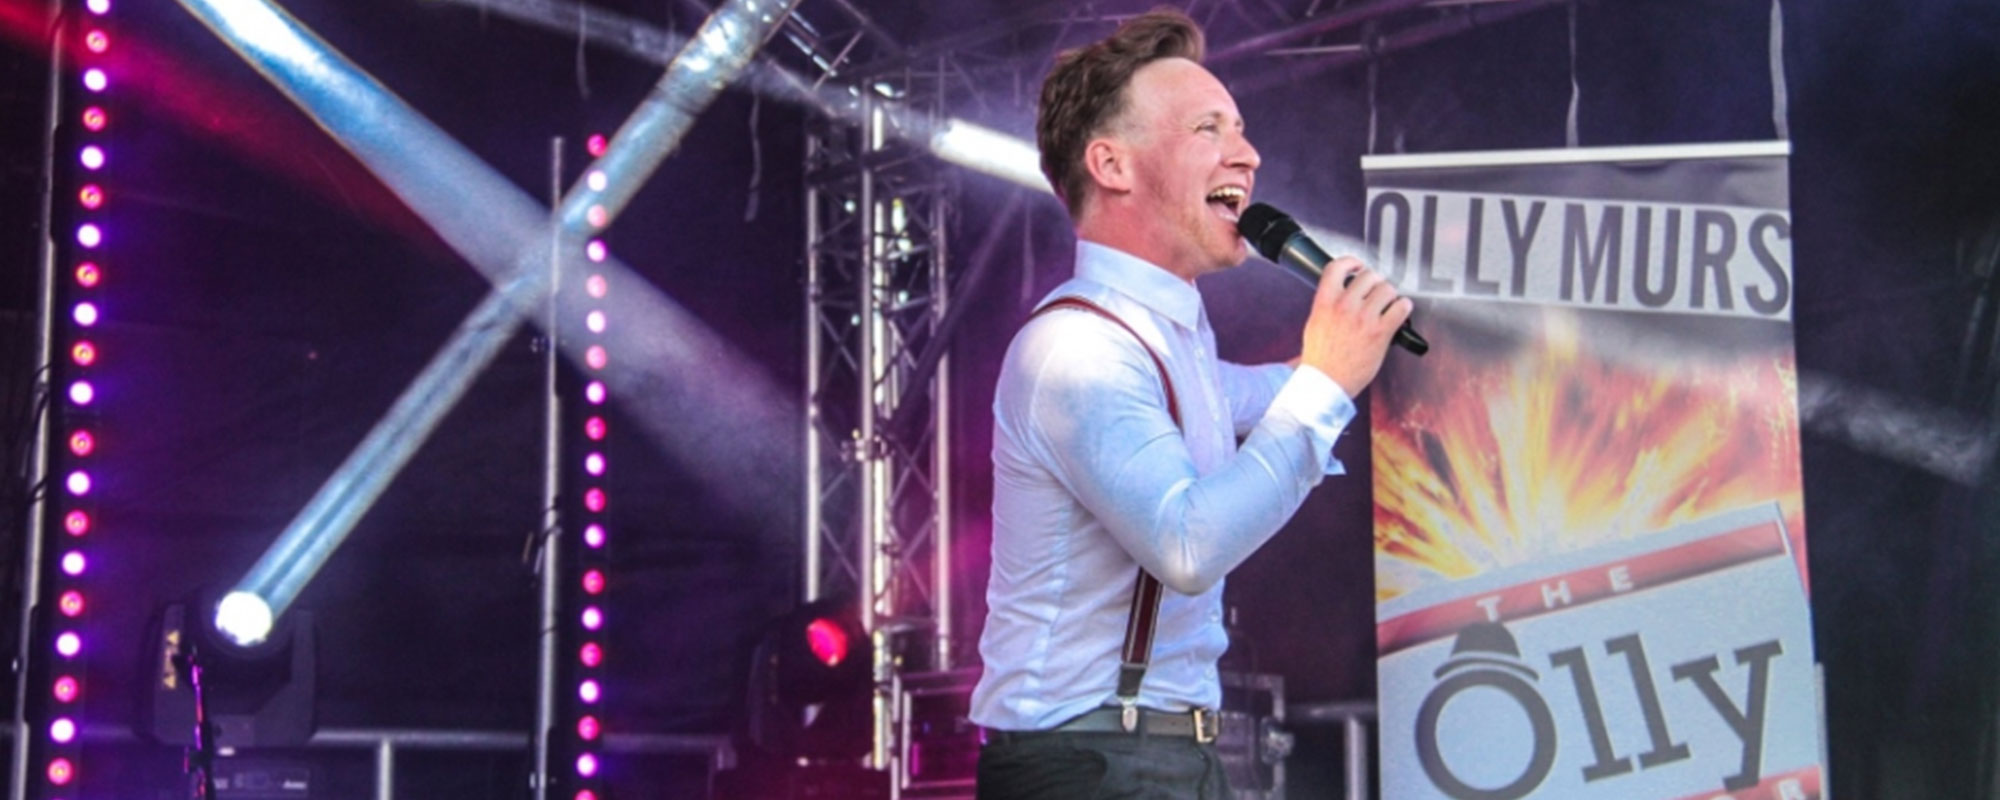 Olly Murs tribute at Party in the Park 2018